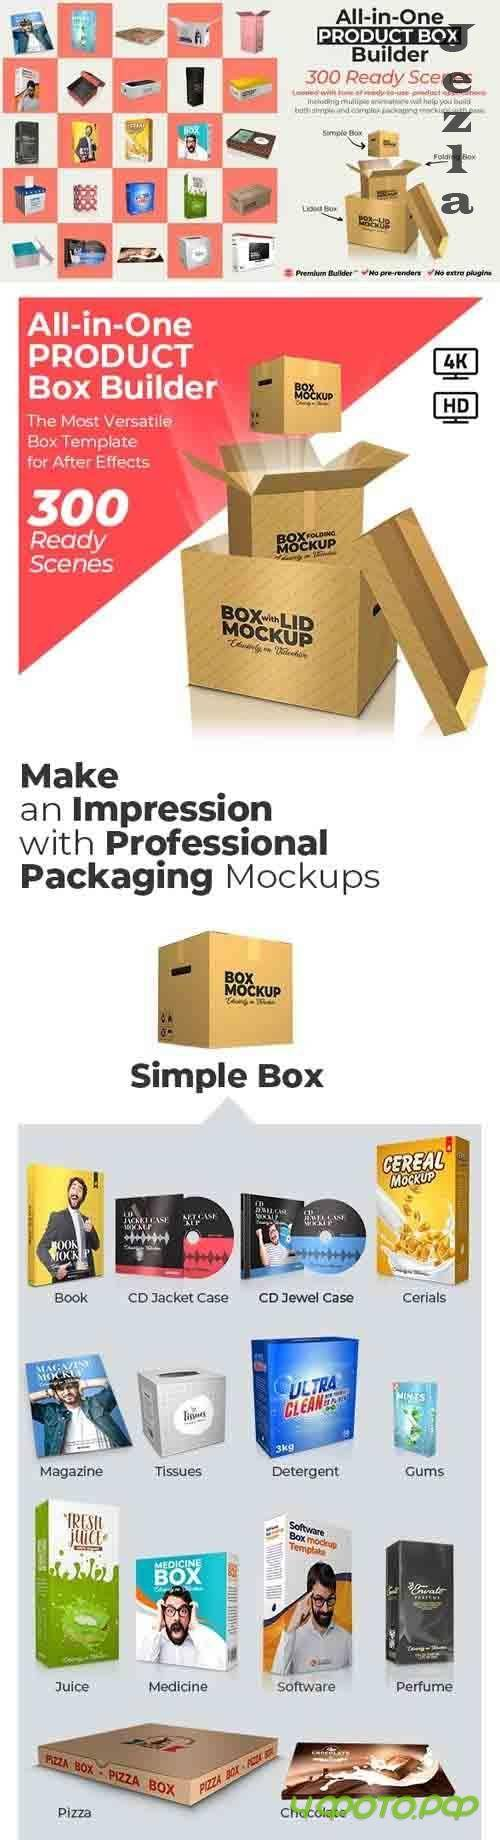 Videohive - All-in-One Product Box Builder - 25901445